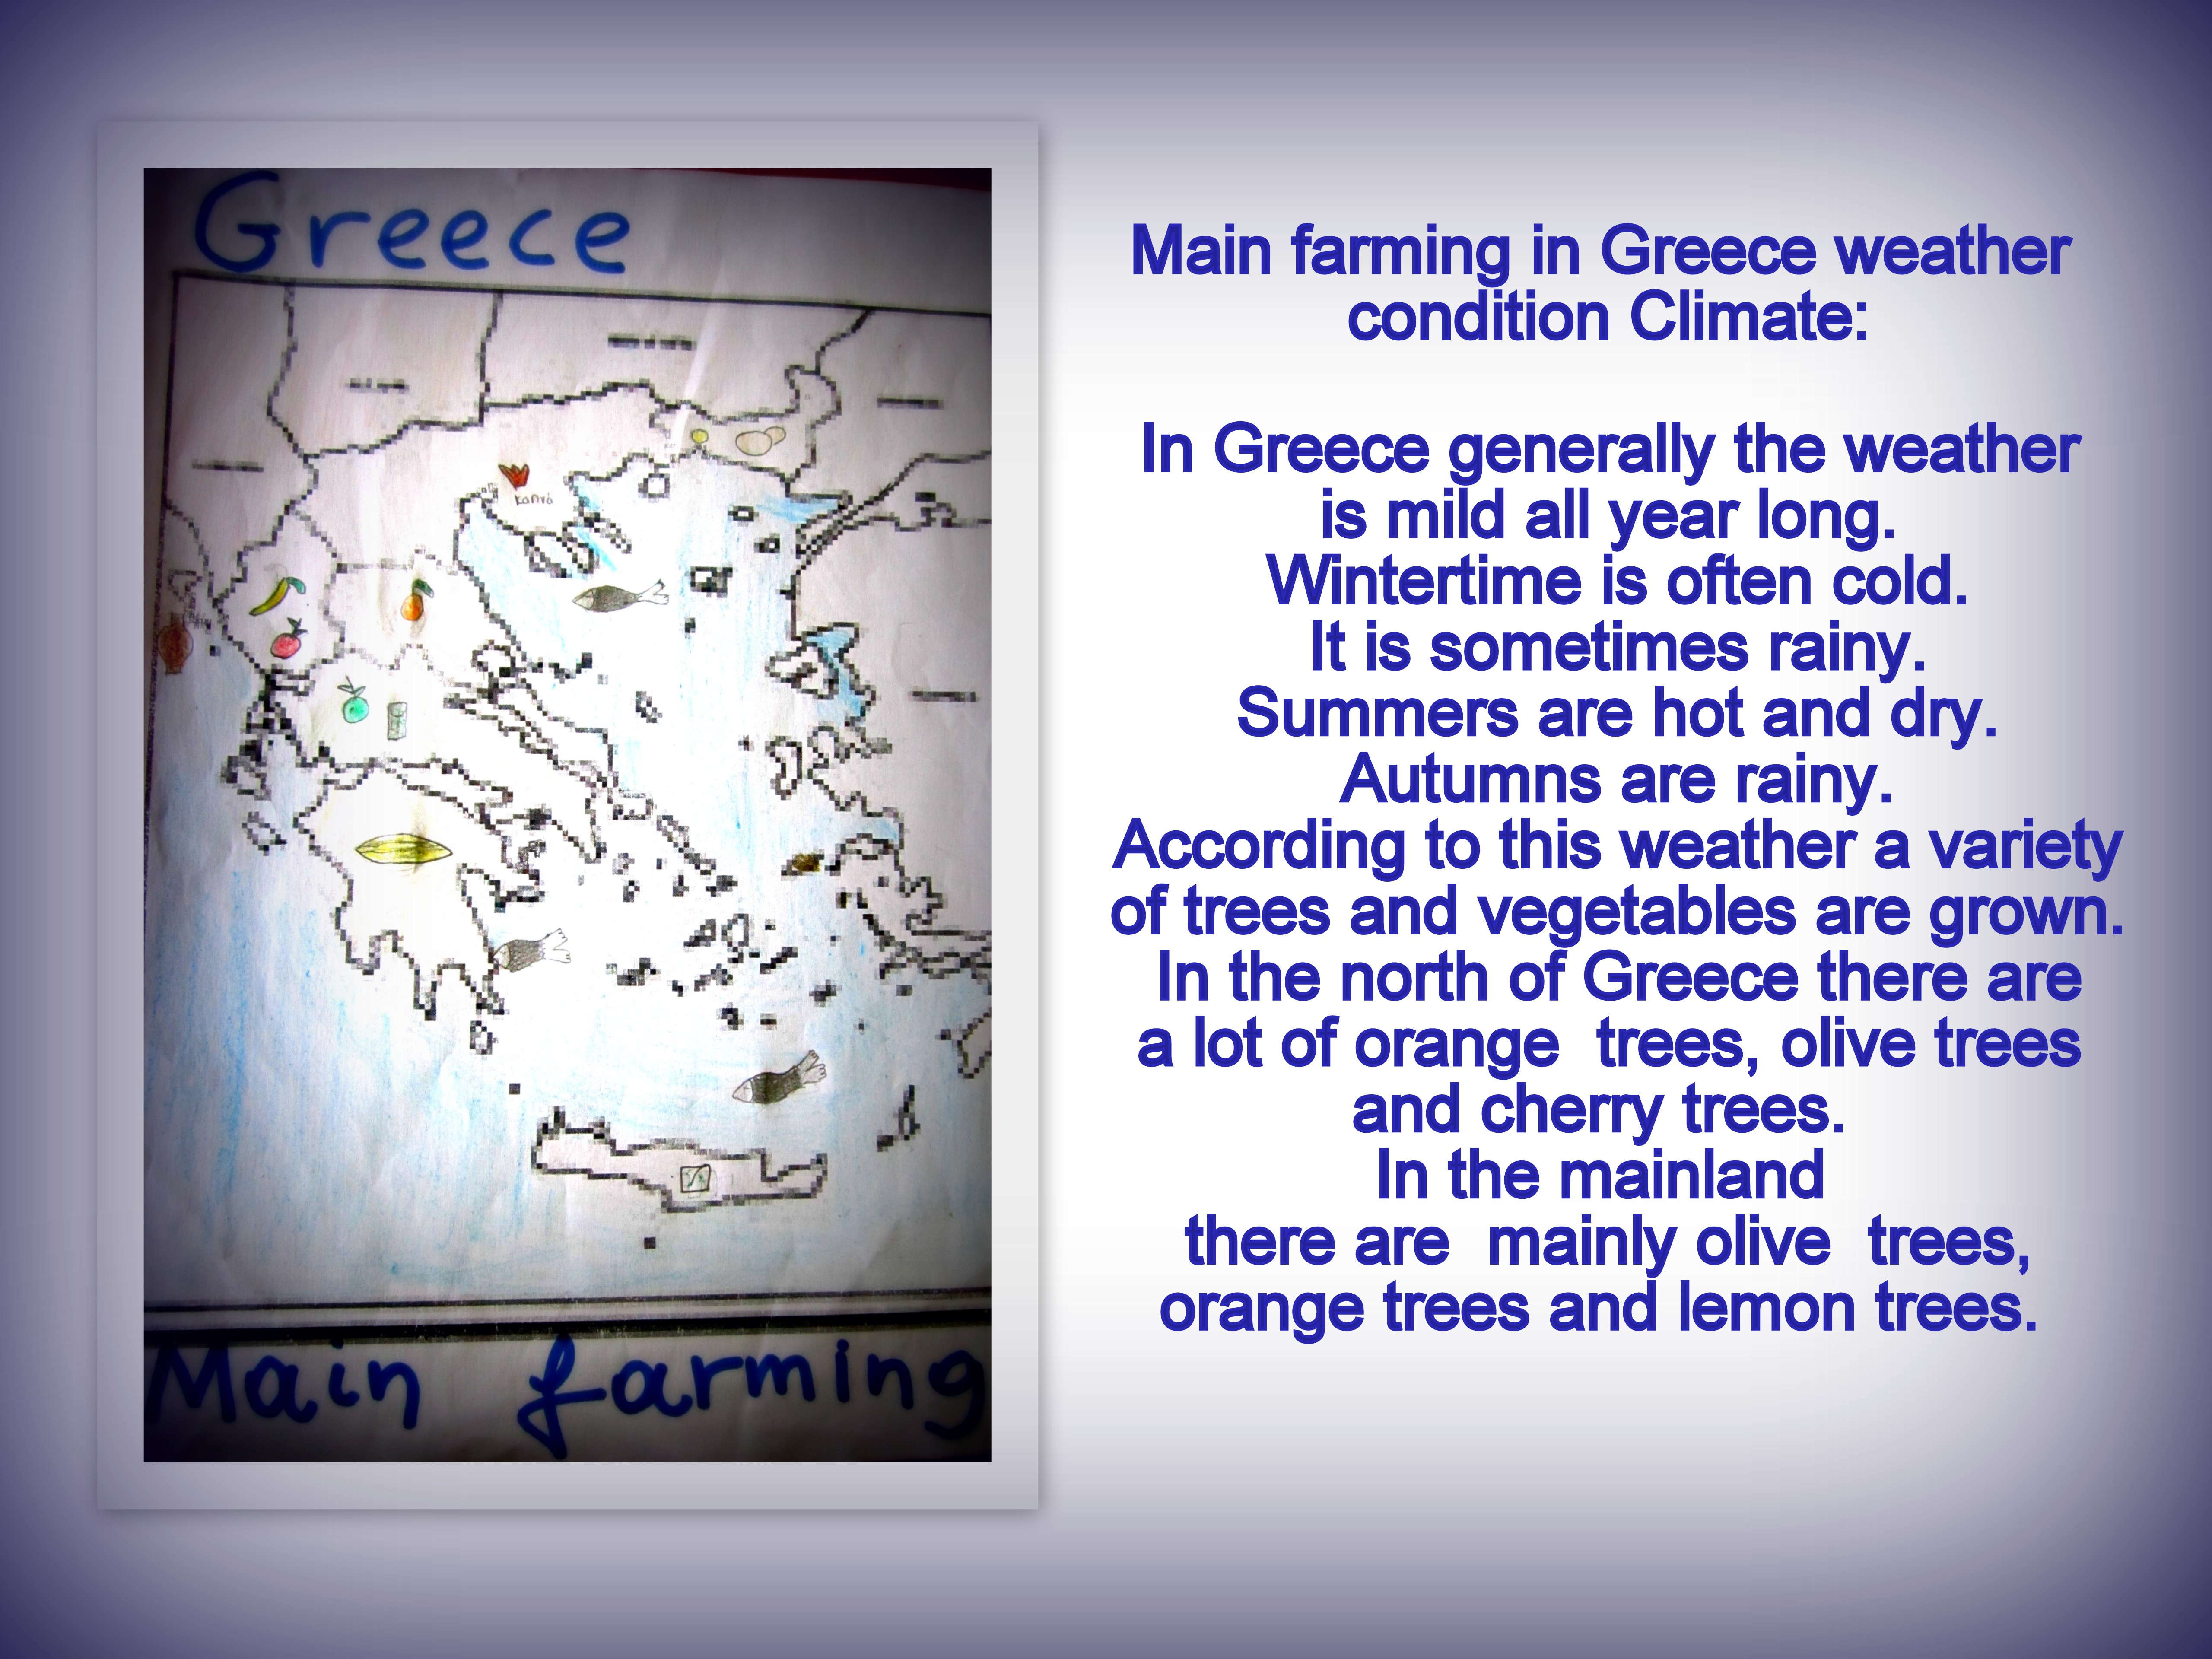 Seasonal temperaturerainfall in GreeceHarvest time